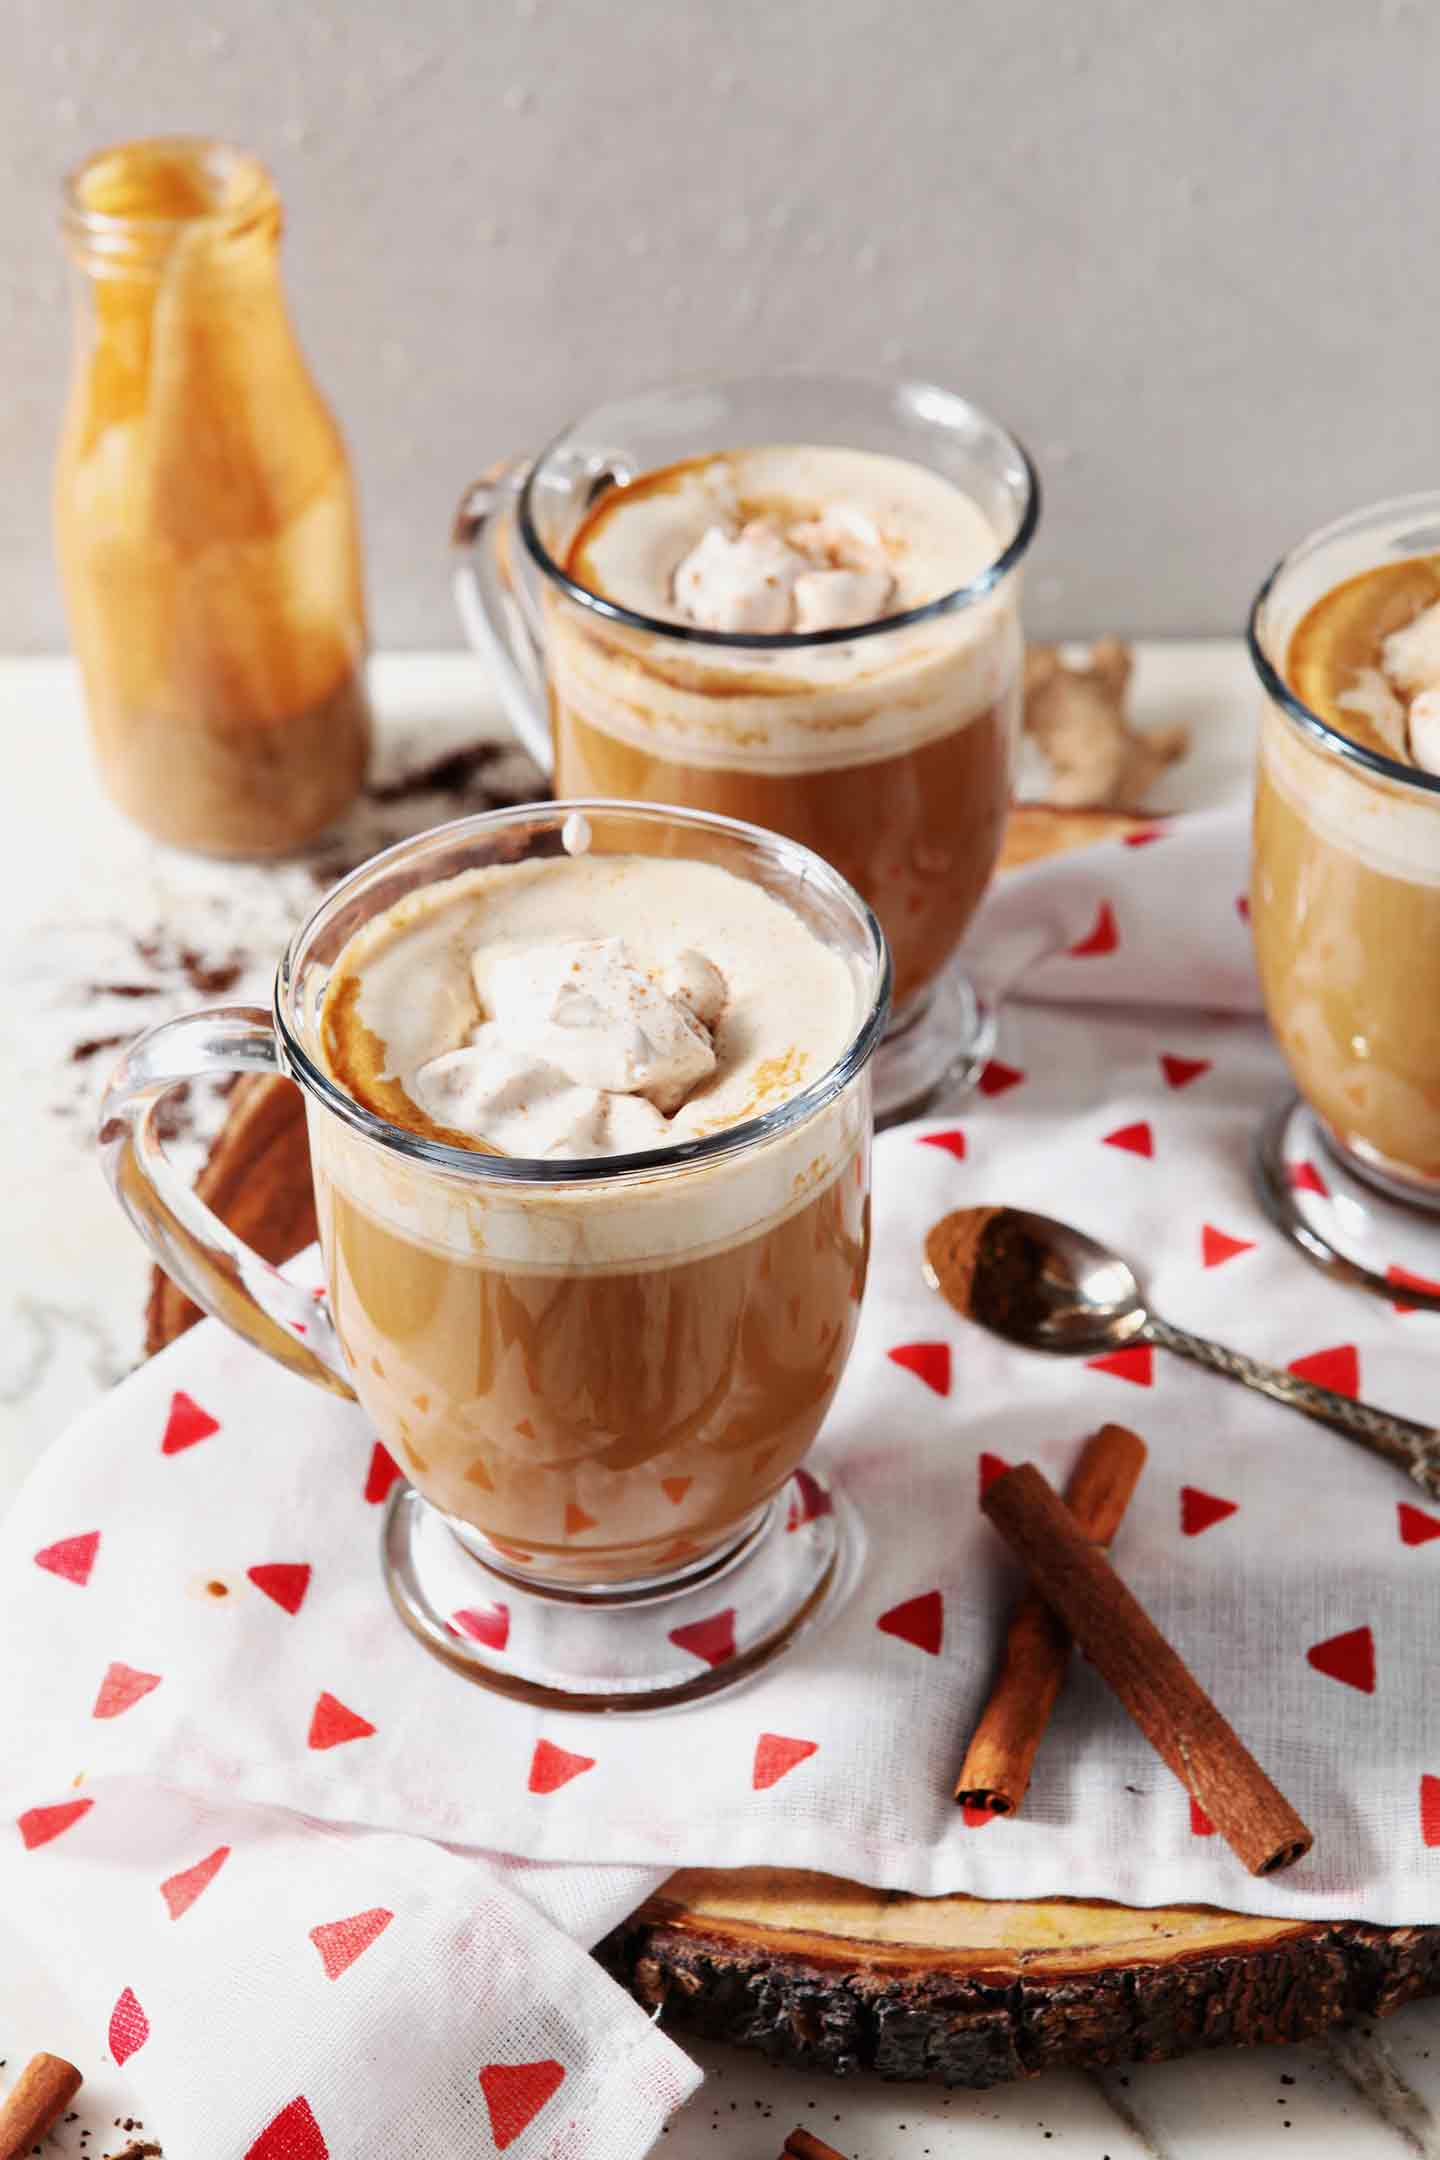 Three mugs of coffee with Homemade Gingerbread Coffee Creamer and spiced whipped cream sit on a marble surface, before drinking